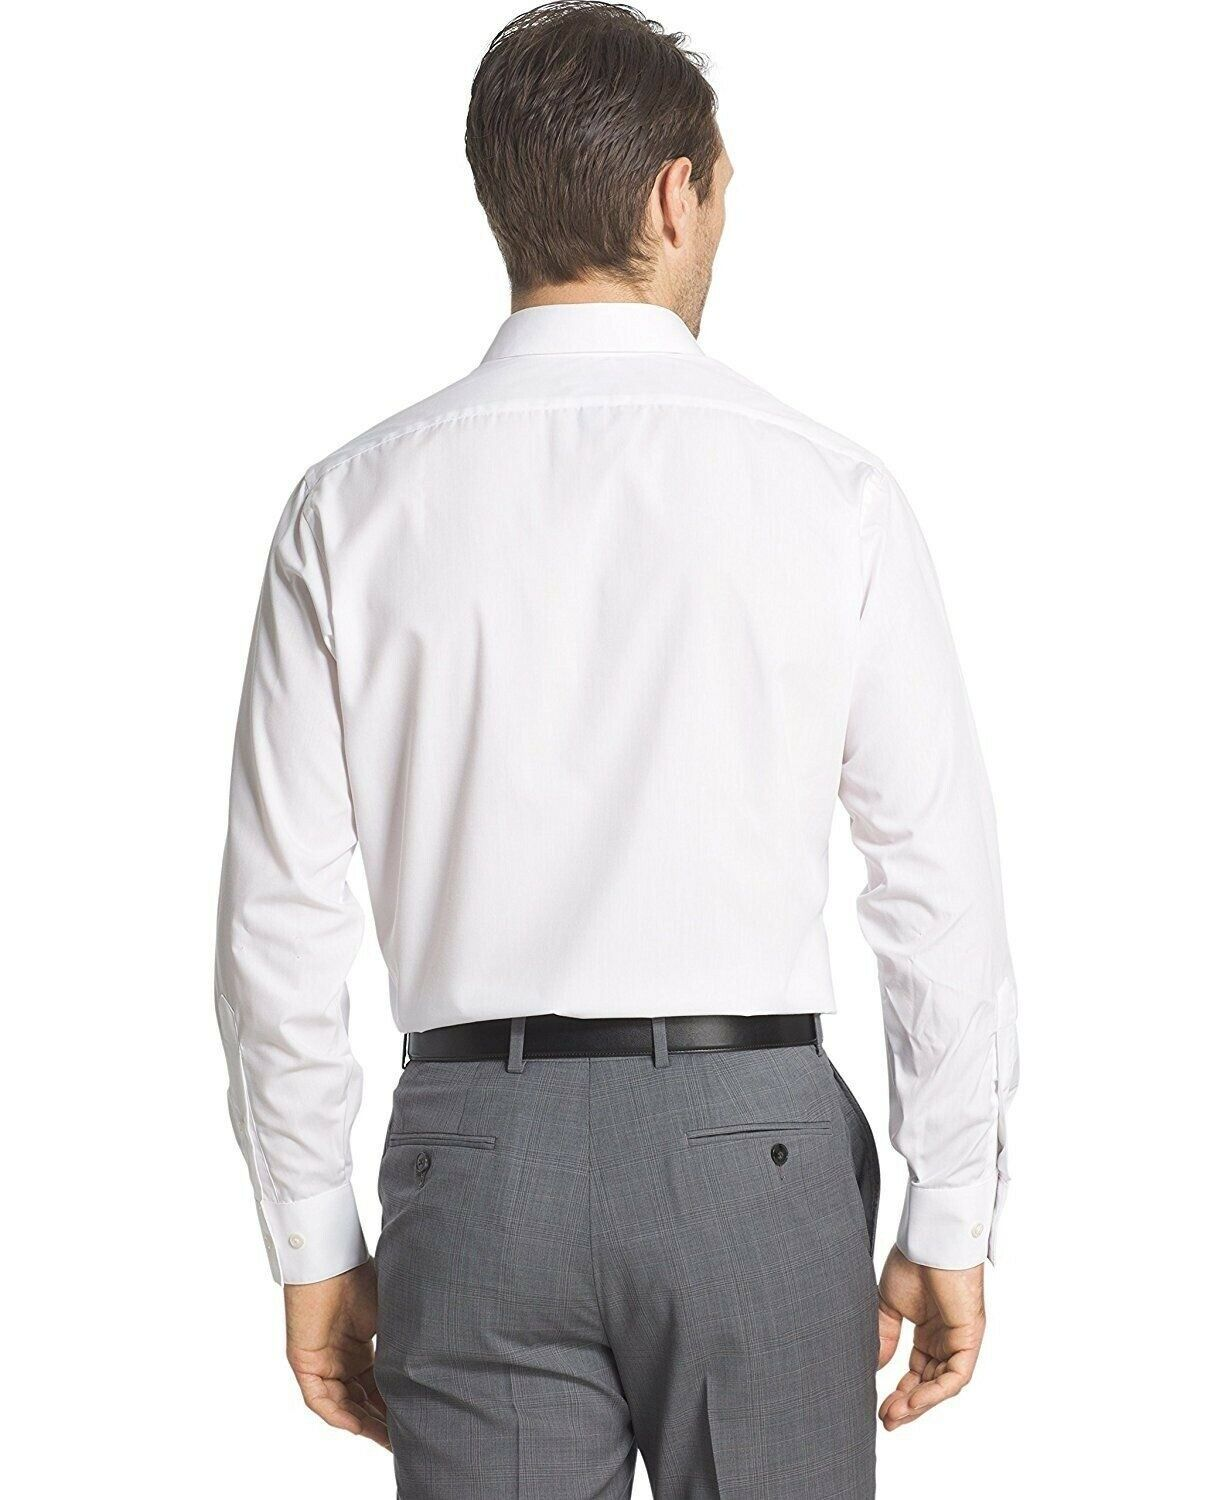 BERLIONI-ITALY-MEN-039-S-PRIME-FRENCH-CONVERTIBLE-CUFF-SOLID-DRESS-SHIRT-WHITE thumbnail 28